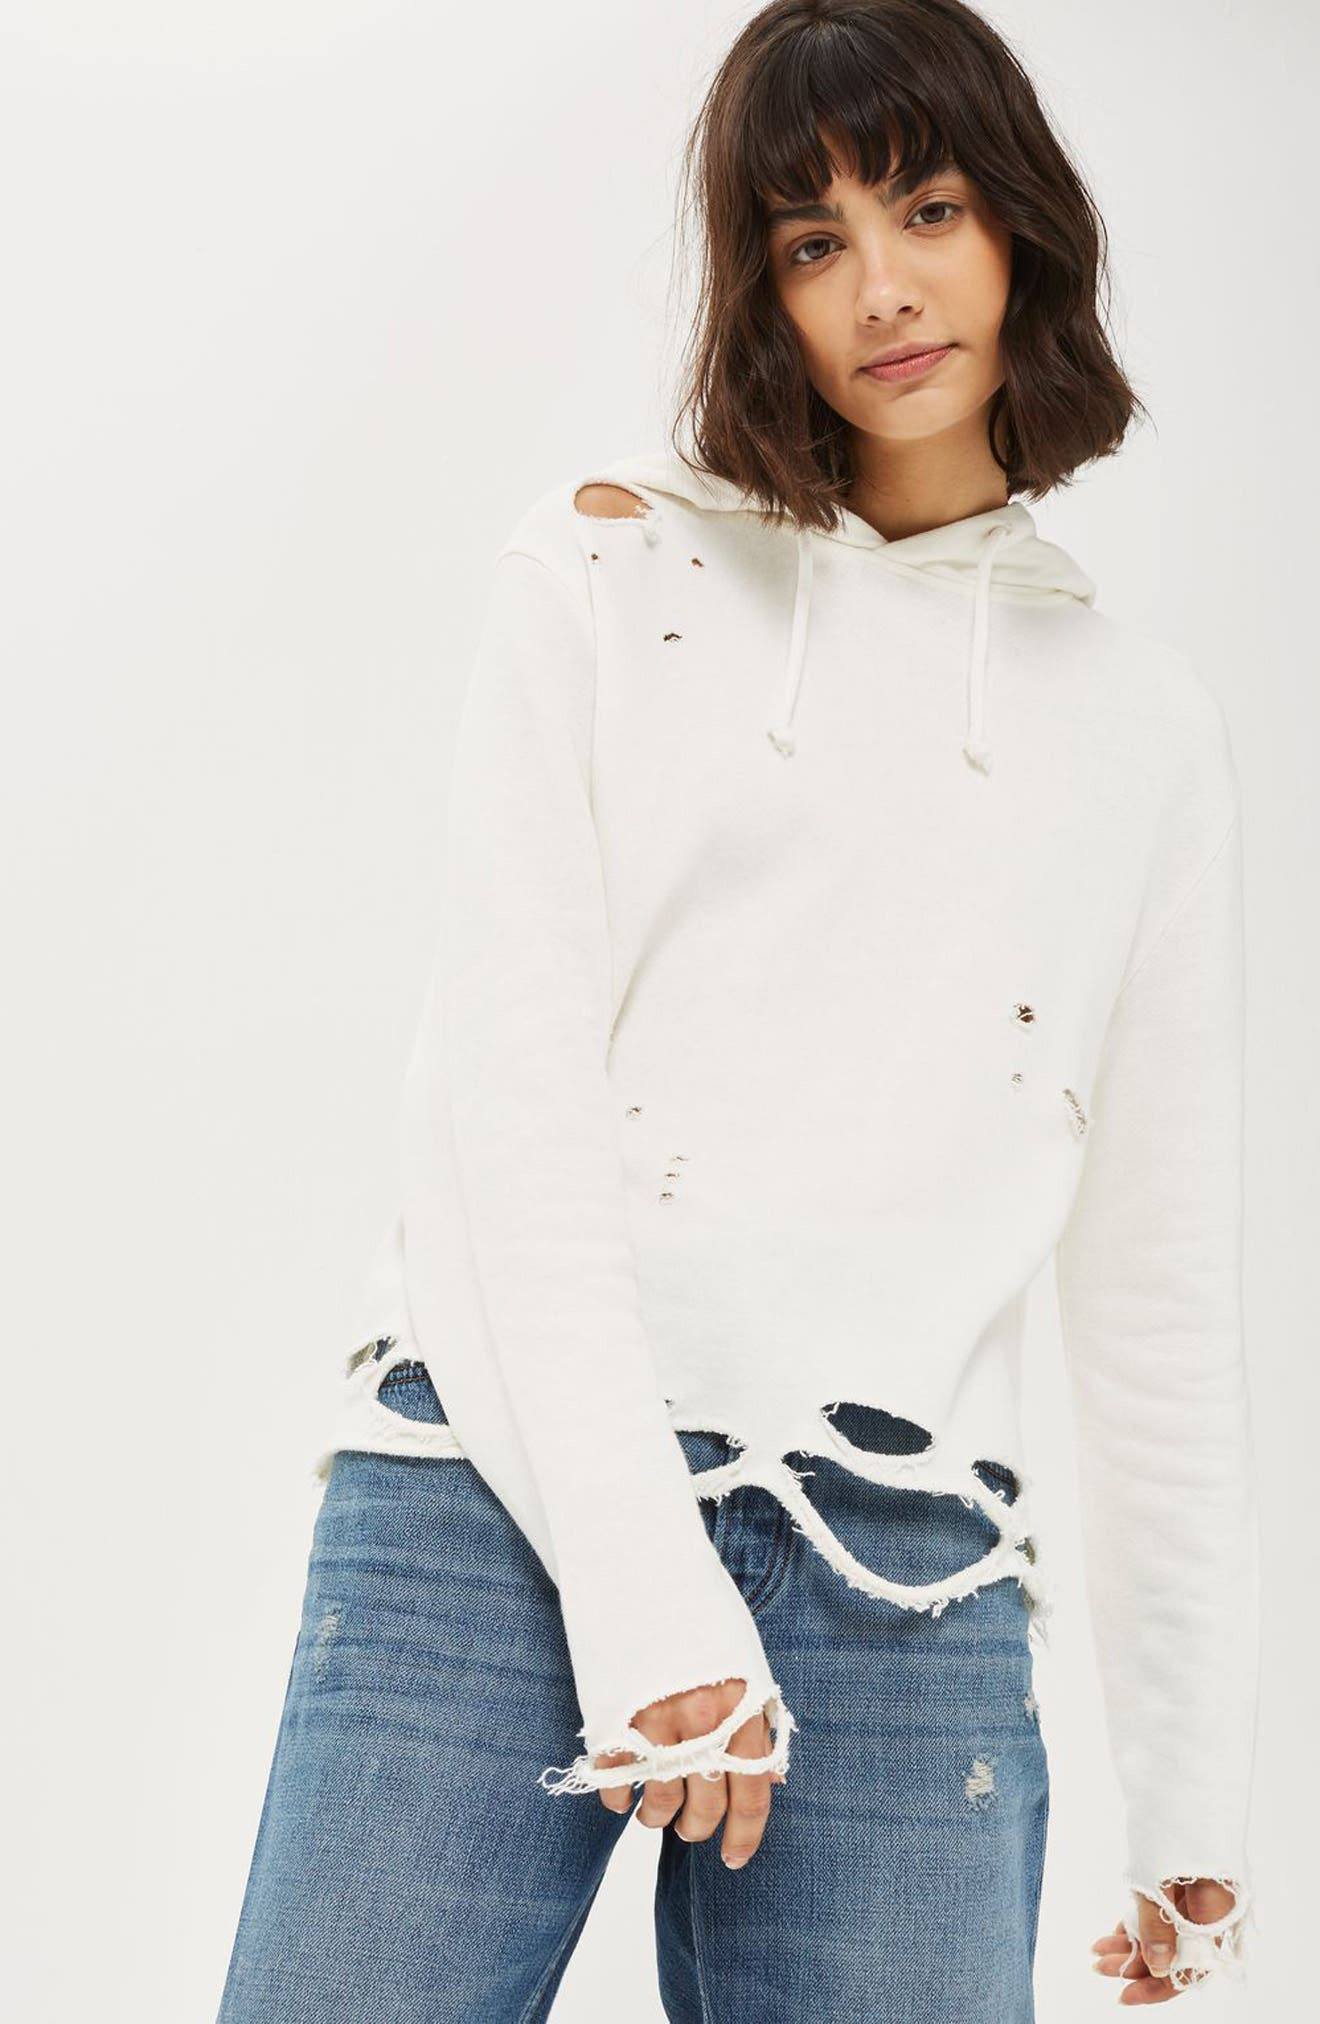 Topshop Hoodie & Jeans Outfit with Accessories